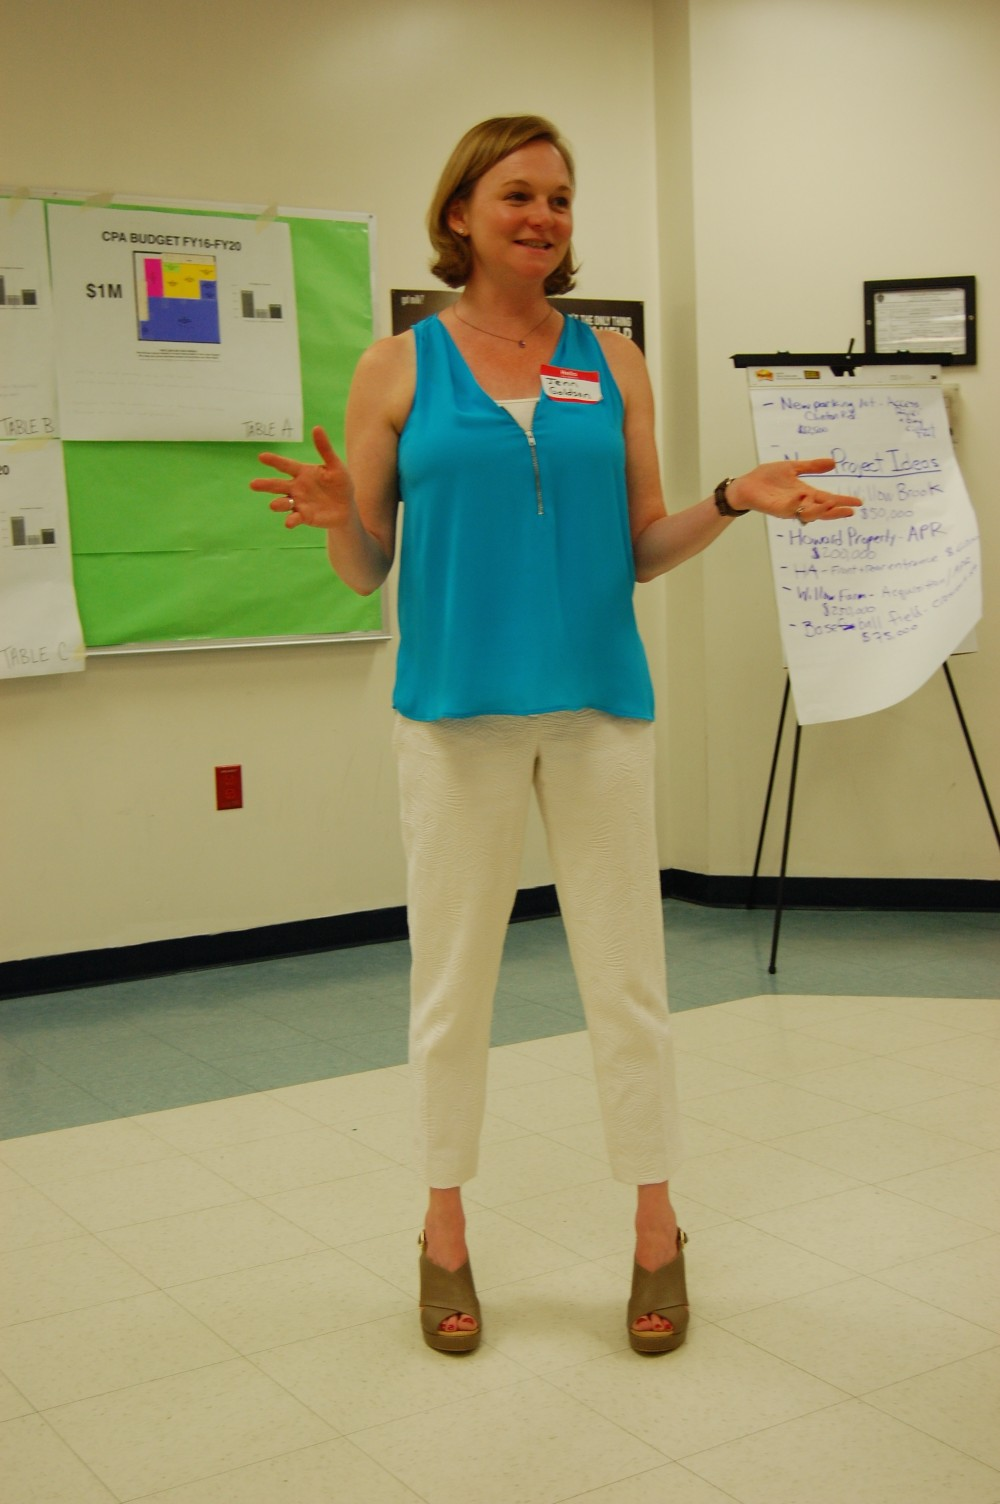 Jennifer Goldson, owner of JM Goldson, facilitating W. Bridgewater Community Workshop